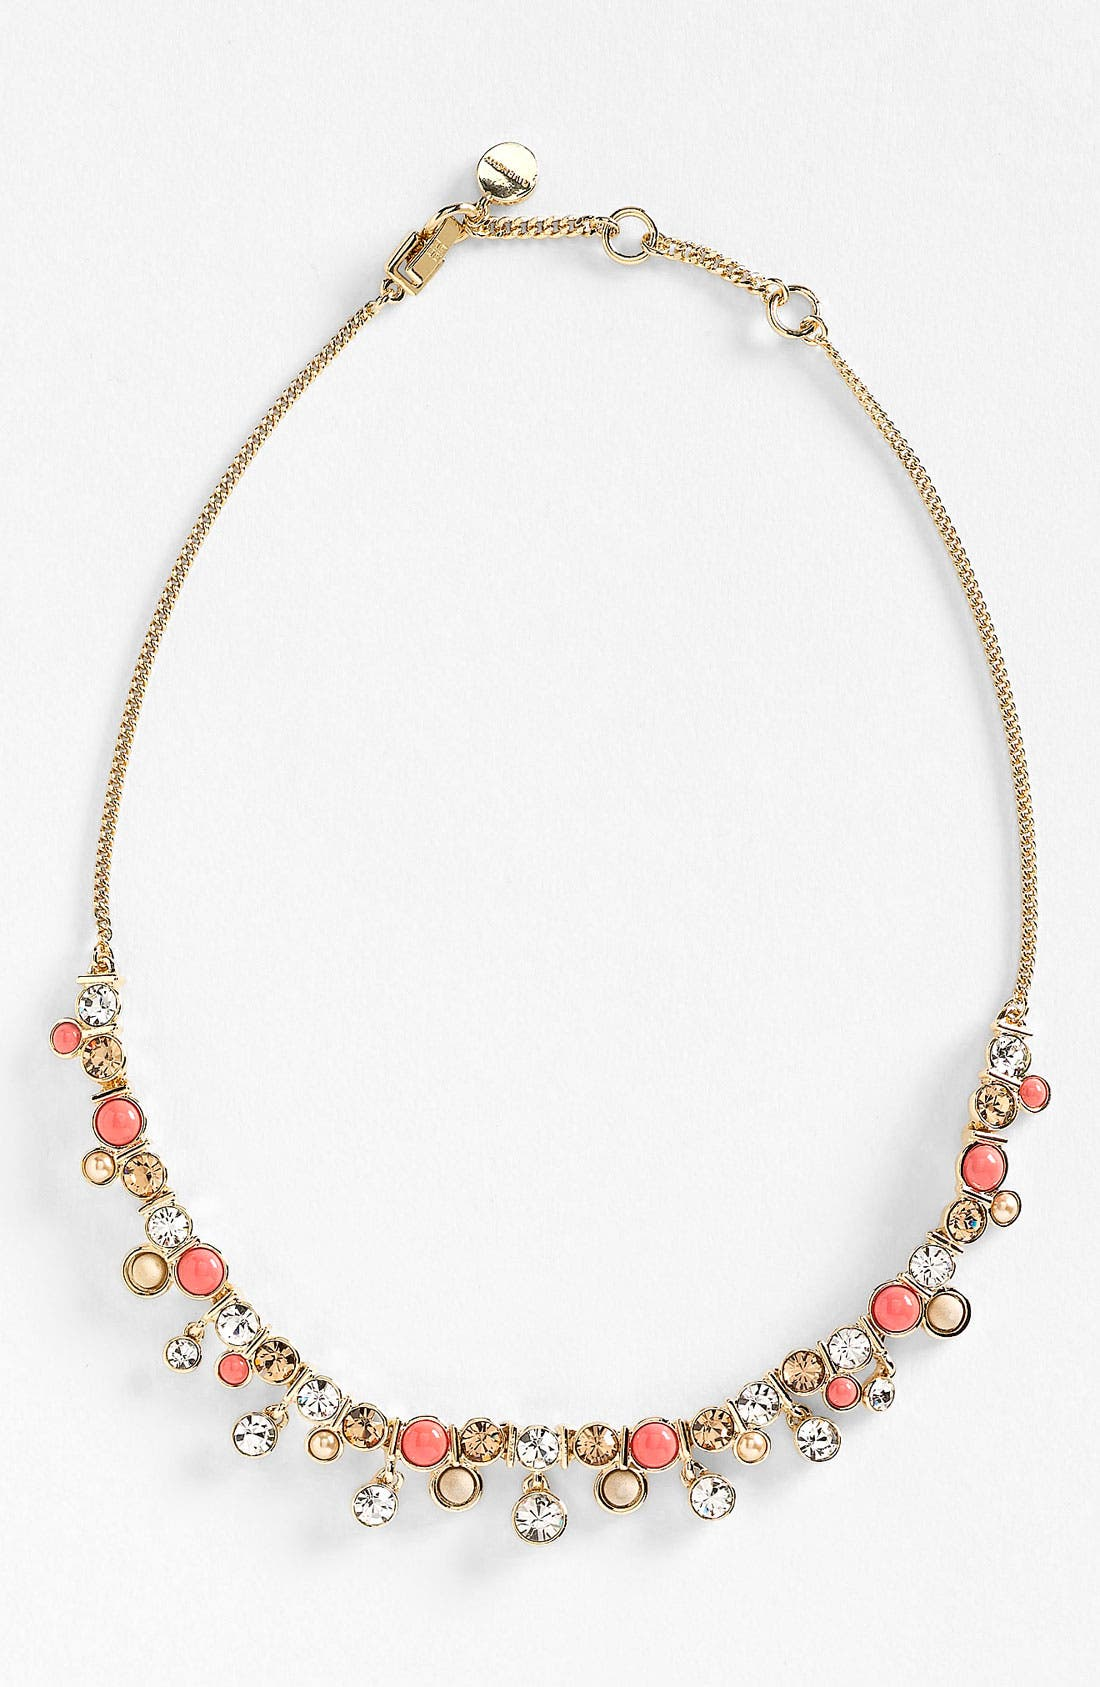 Main Image - Givenchy 'Lark' Crystal & Bead Frontal Necklace